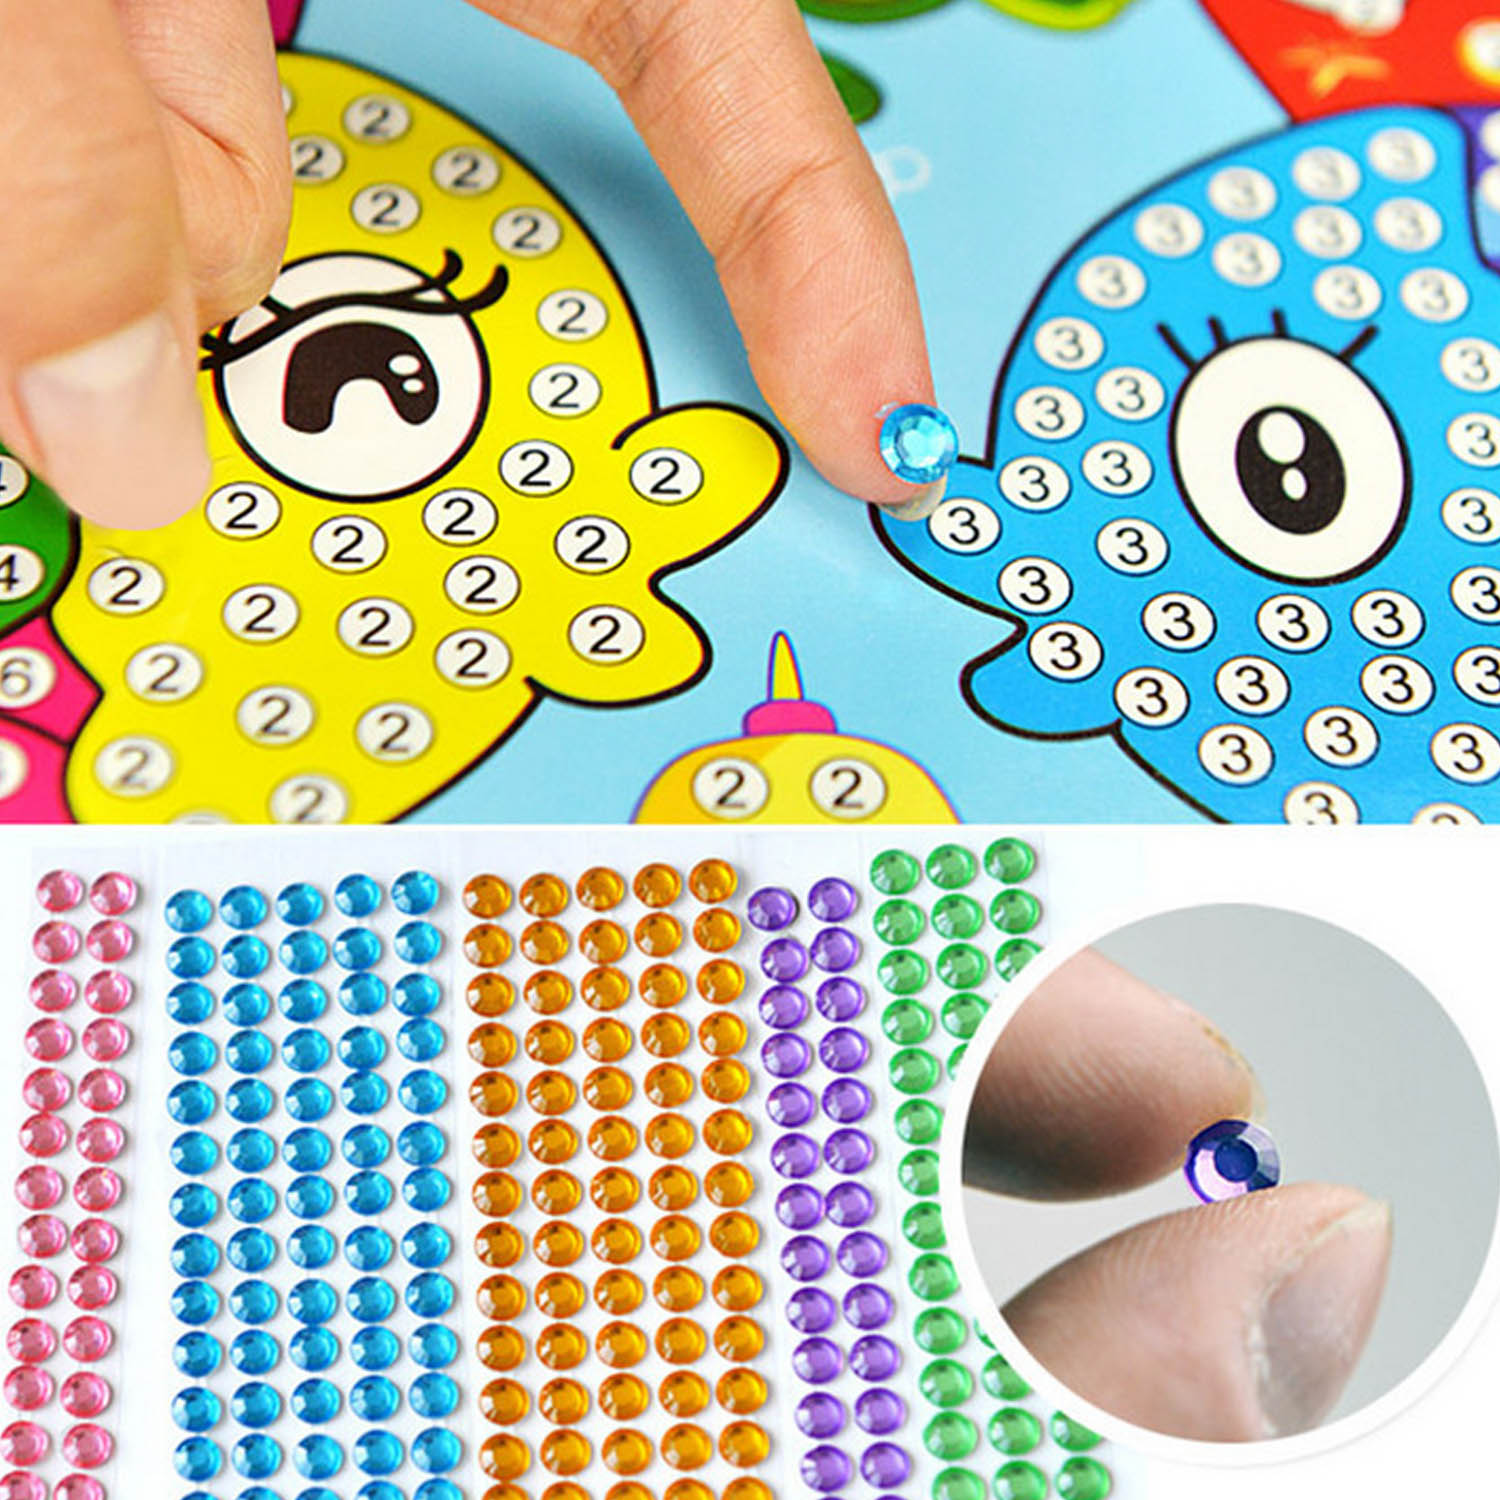 Besegad 3 Set Children Kid Drawing DIY Gif Rhinestone Painting Sticker Mosaic Puzzle Toys Art Craft Educational Toy Random Style